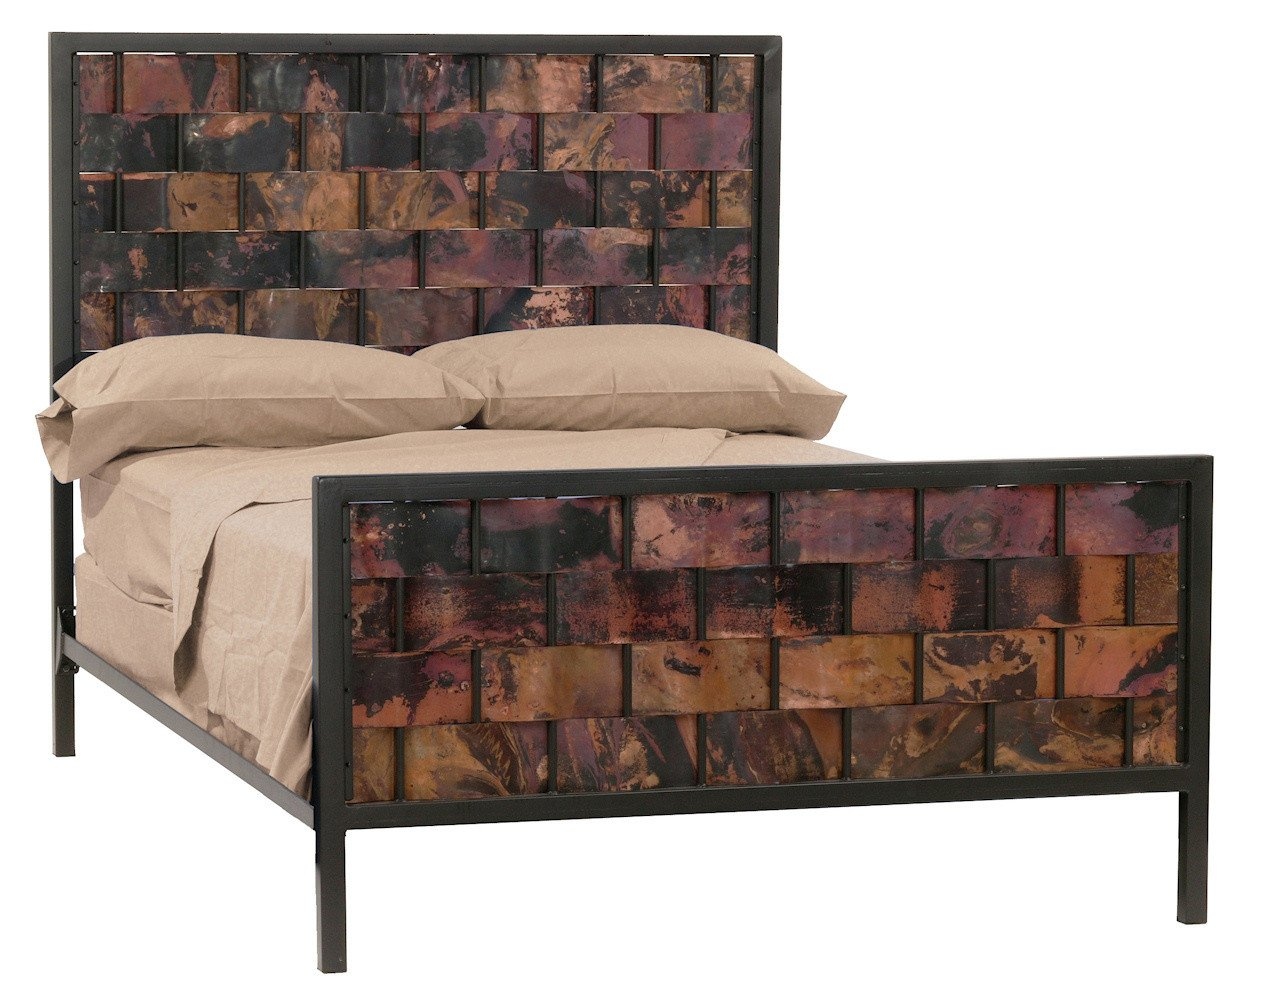 Stone County California King Iron Bed Copper Rushton Bed Image